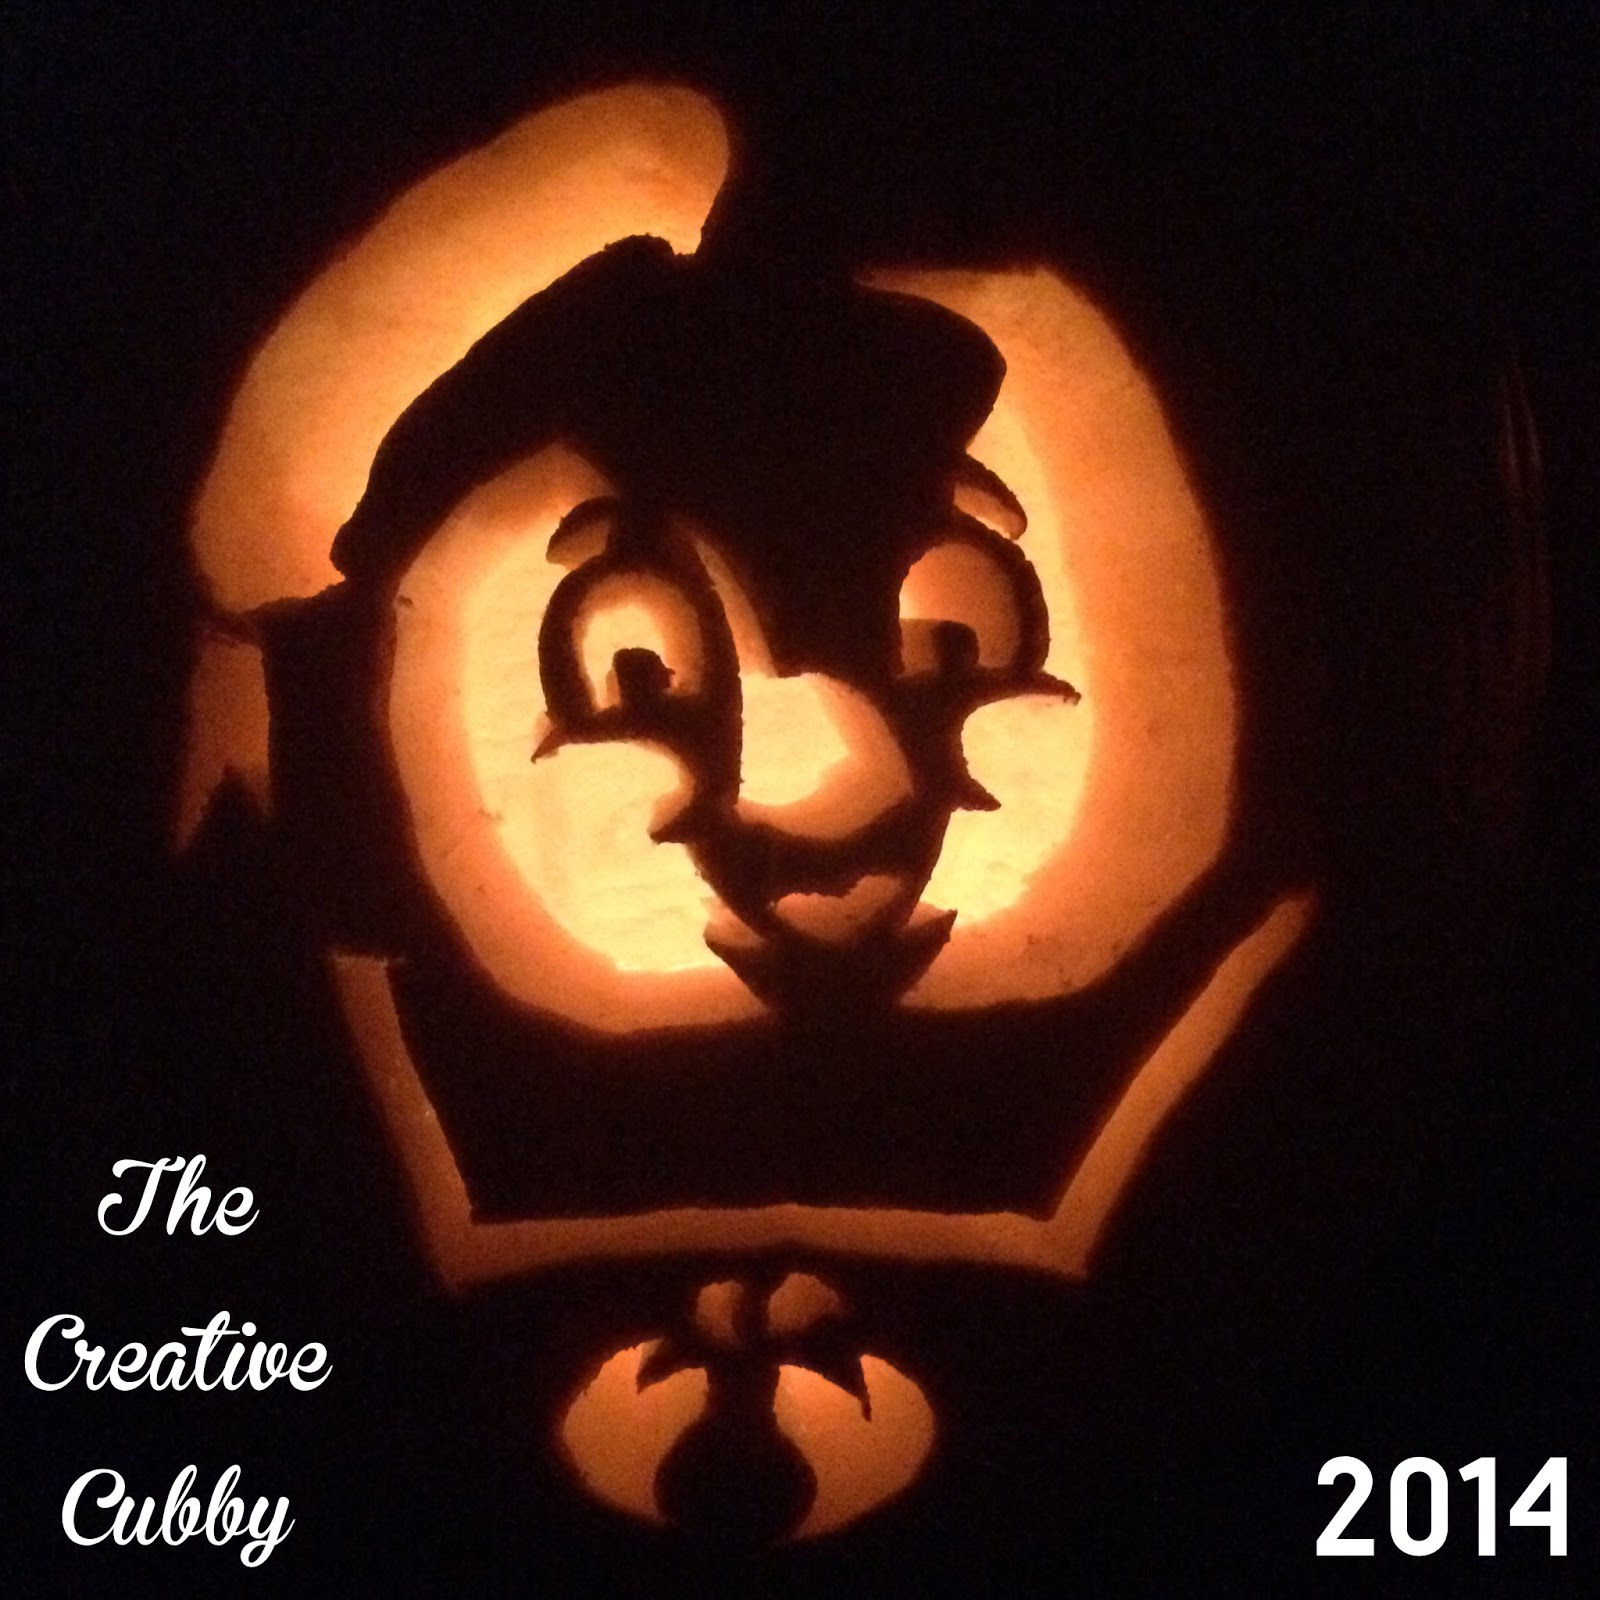 The Creative Cubby October 2014